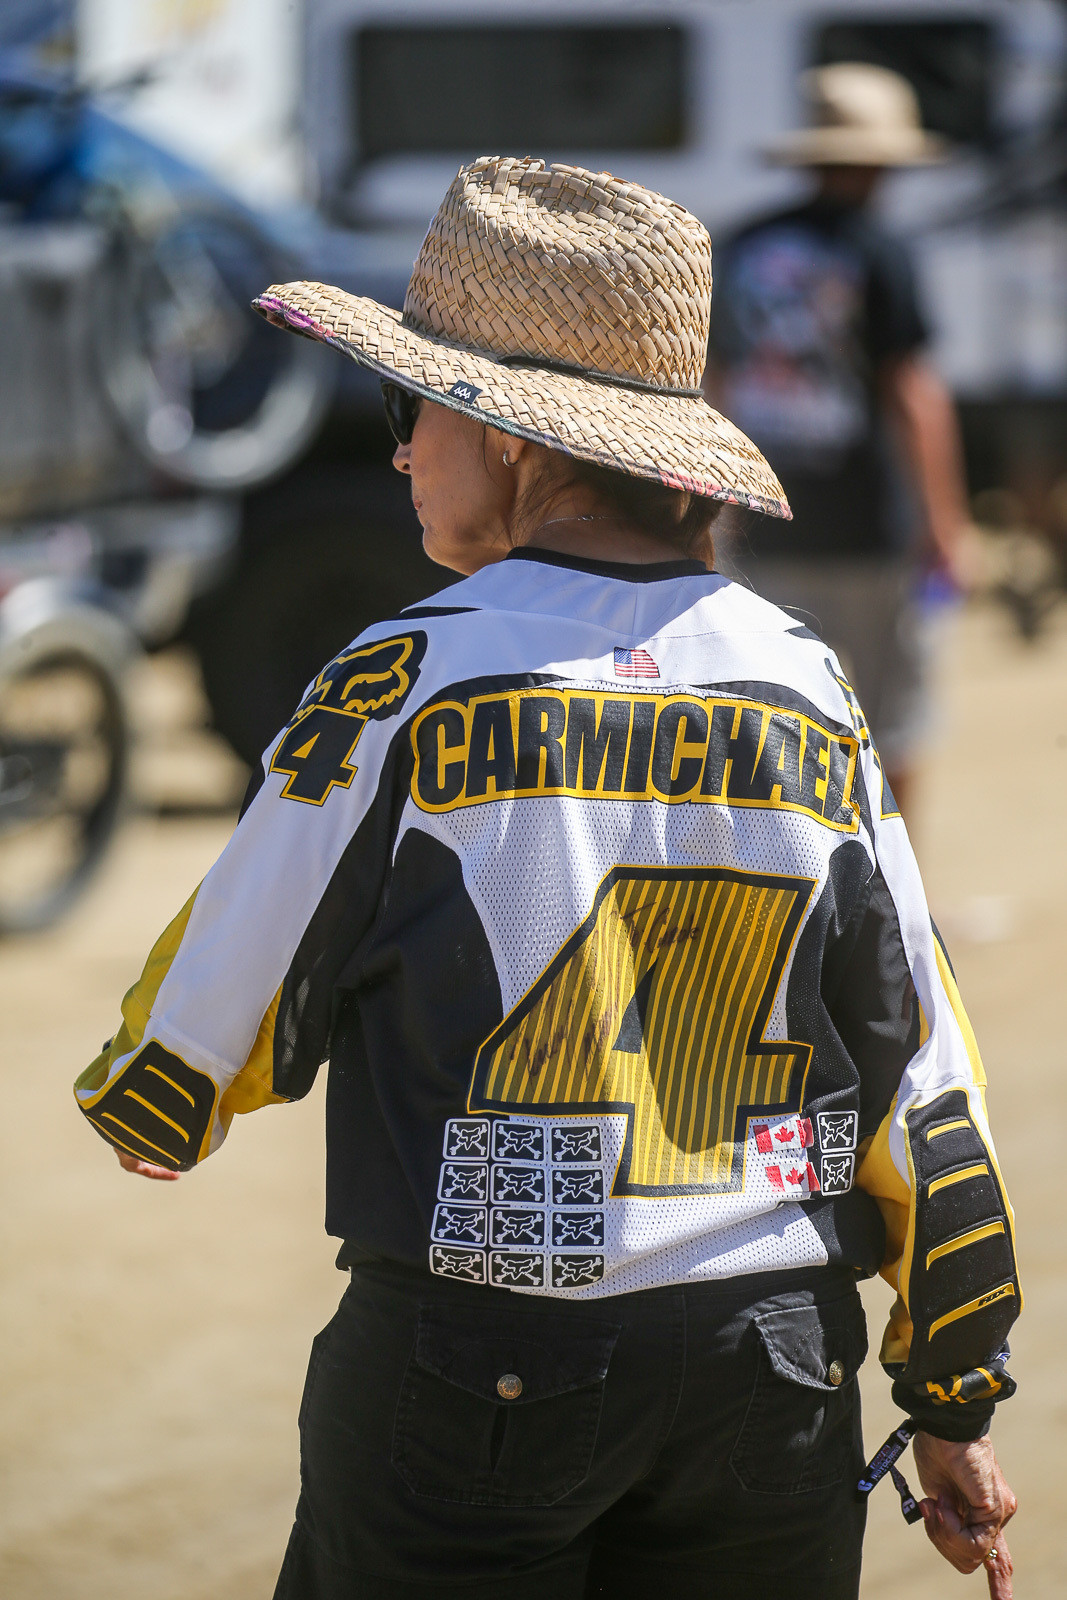 Sure, you've got cool memorabilia in your collection. But do you have an end-of-year autographed Ricky Carmichael jersey that you can whip out of your collection like Carole can?